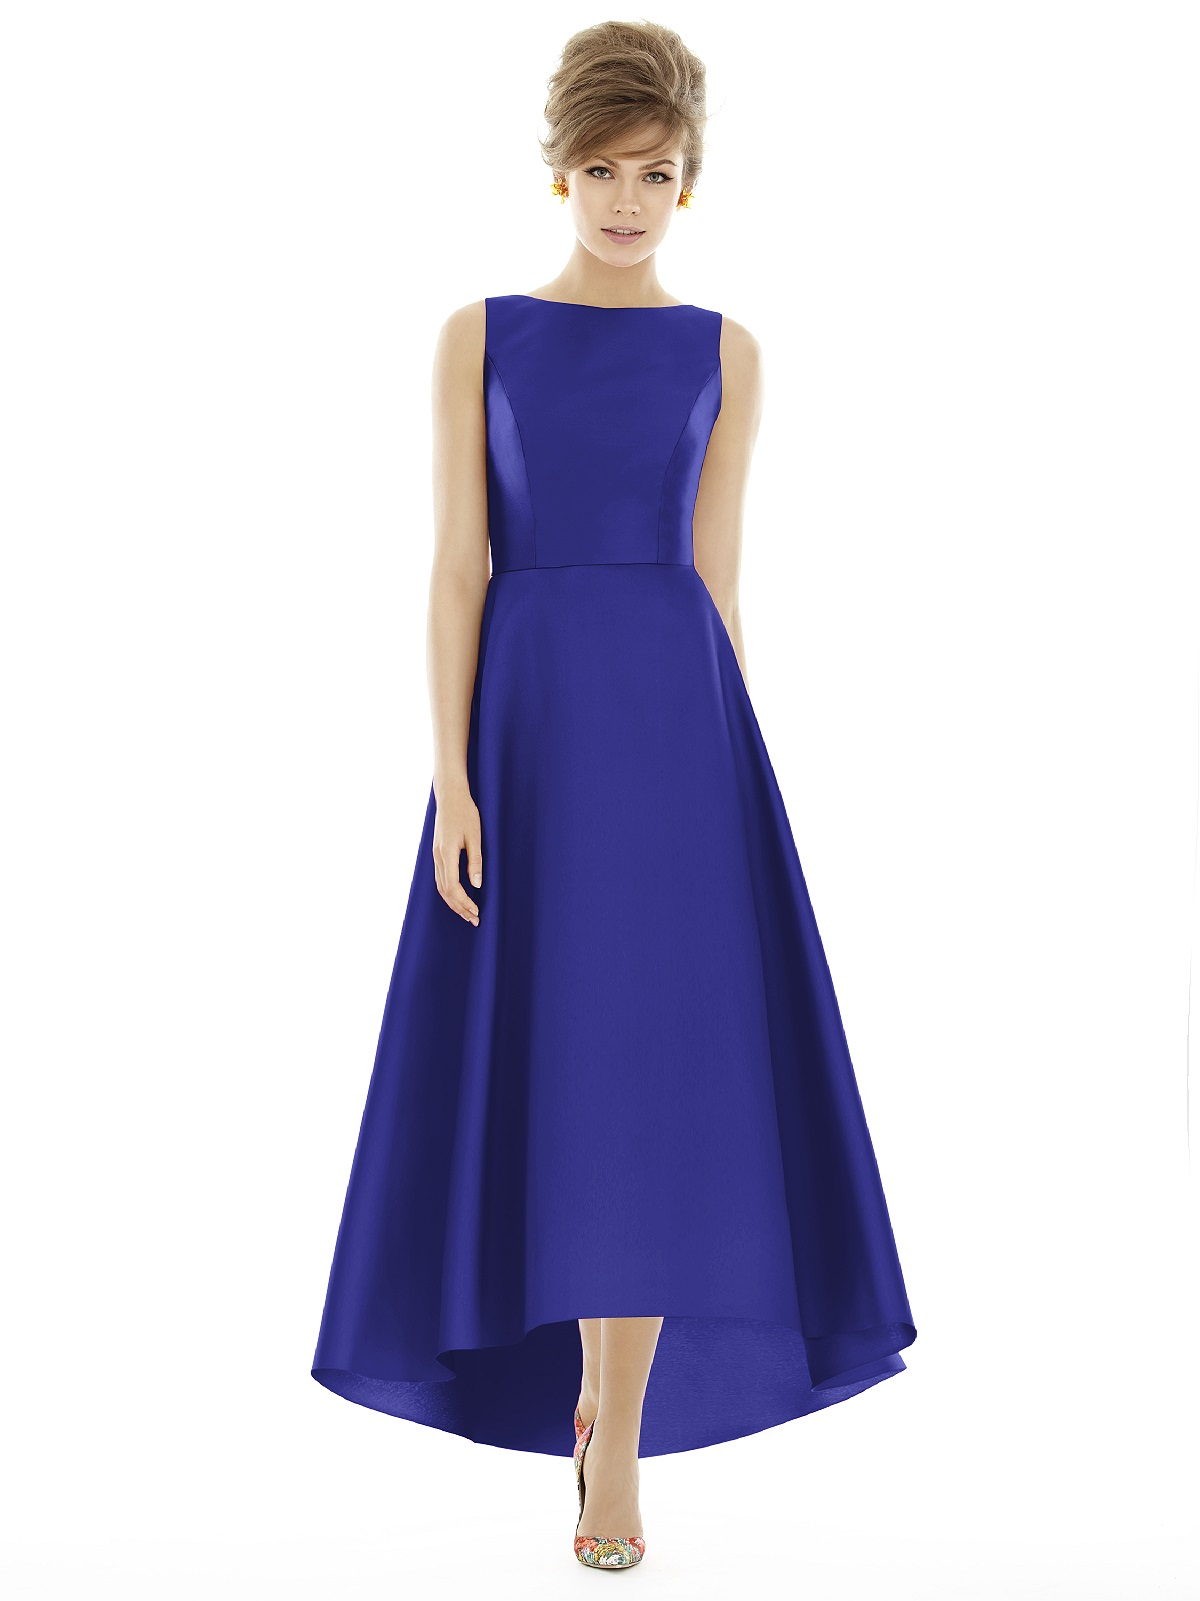 ALFRED SUNG BRIDESMAID DRESSESALFRED SUNG DRESSES D 698THE DESSY ...